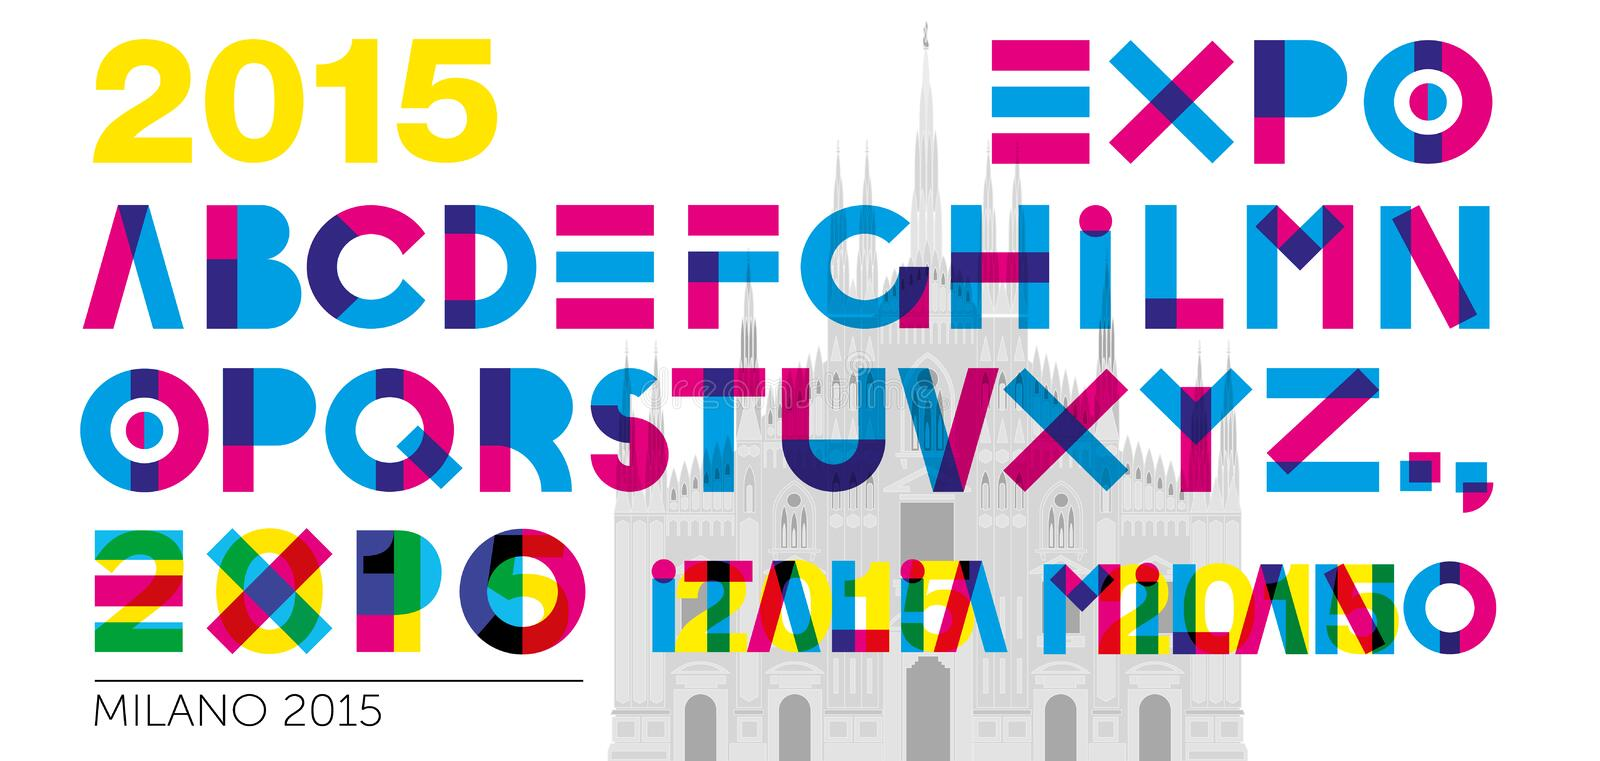 Expo 2015 font. Expo 2015 graphic font, file